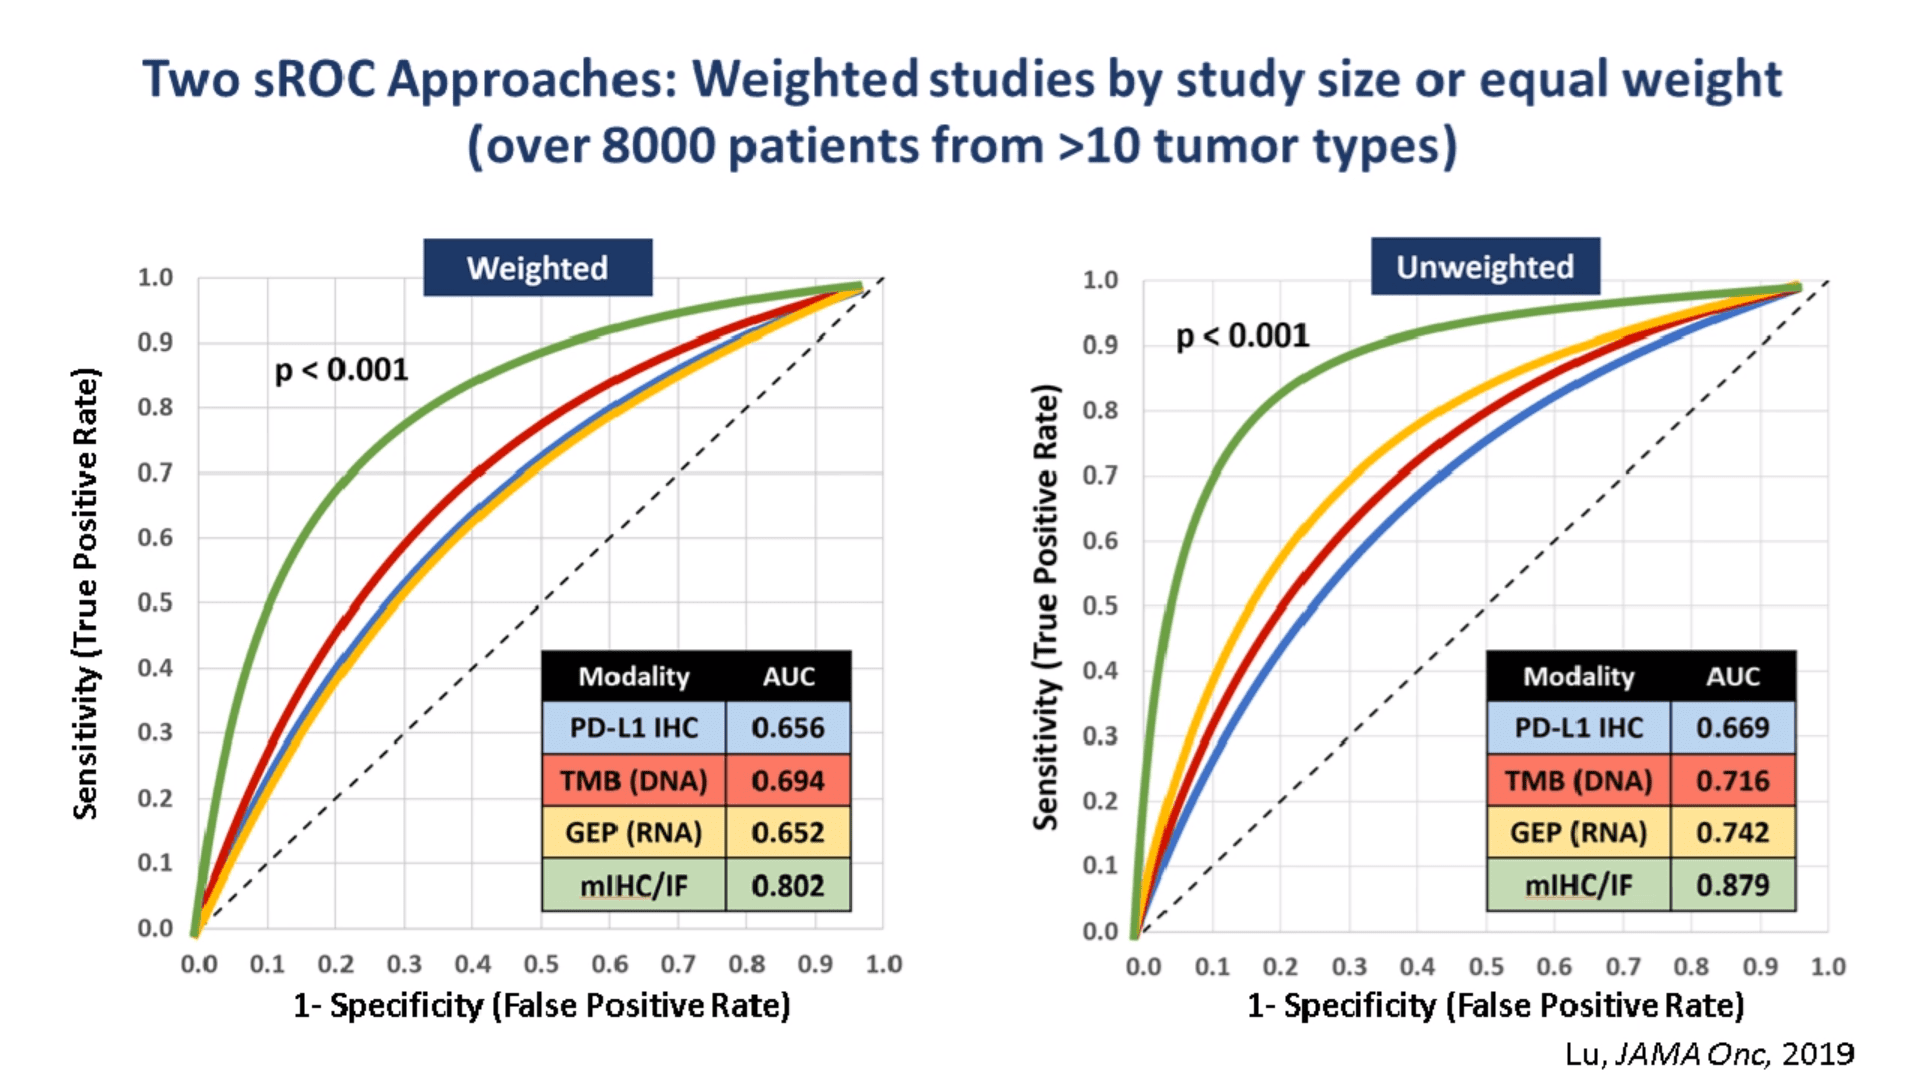 Weighted and unweighted ROC curves comparing biomarker modalities: PD-L1 IHC, TMB, GEP, mIF/IHC